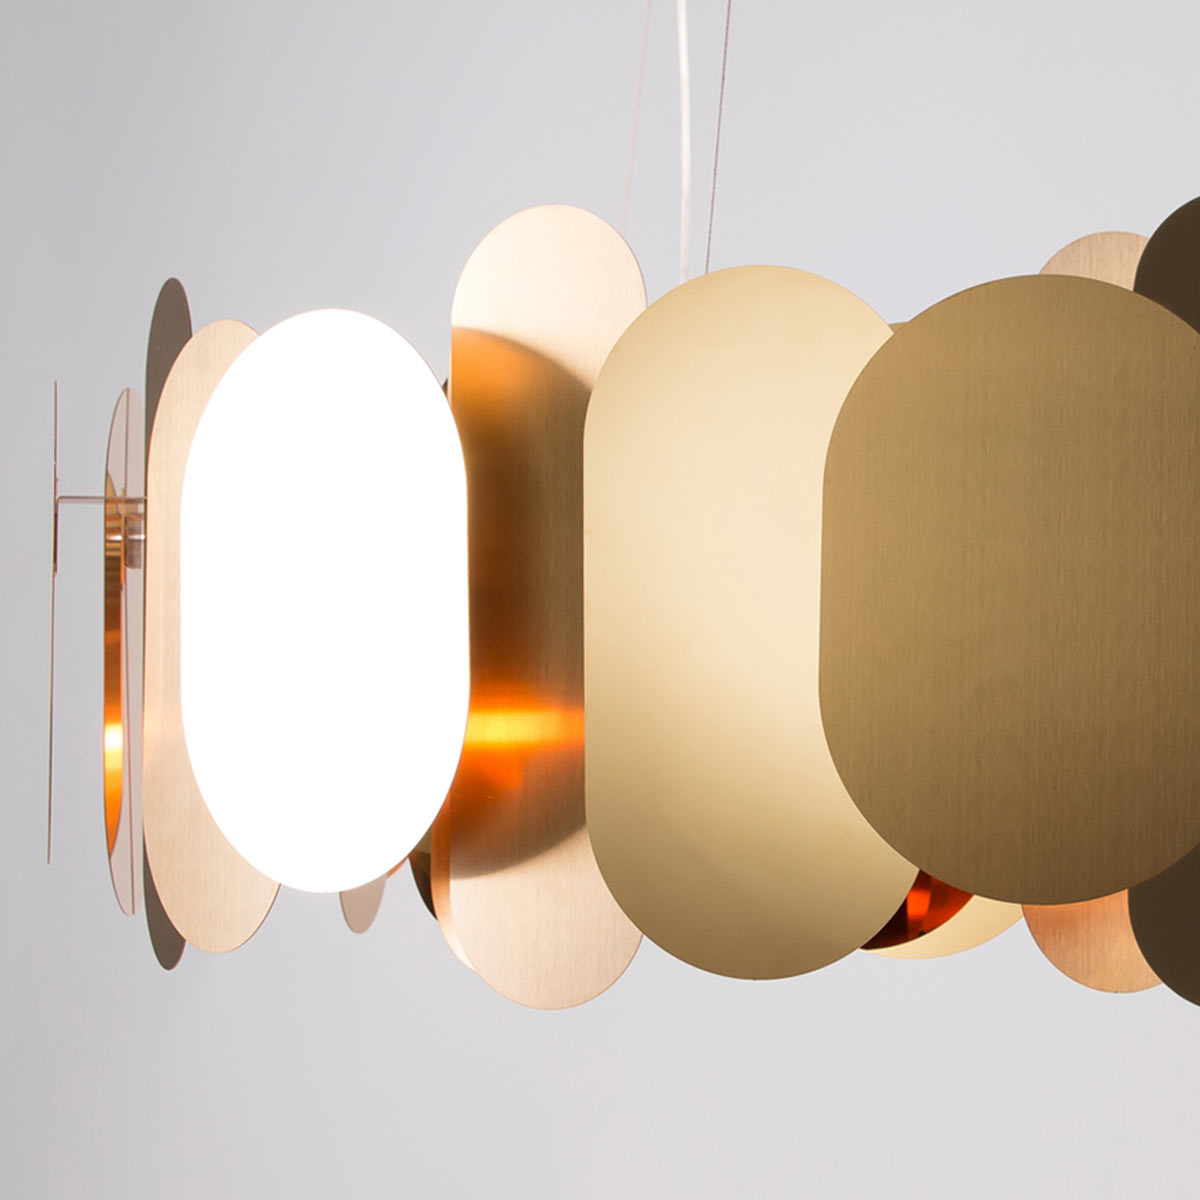 Innermost Panel Chandelier by Steve Jones Olson and Baker - Designer & Contemporary Sofas, Furniture - Olson and Baker showcases original designs from authentic, designer brands. Buy contemporary furniture, lighting, storage, sofas & chairs at Olson + Baker.